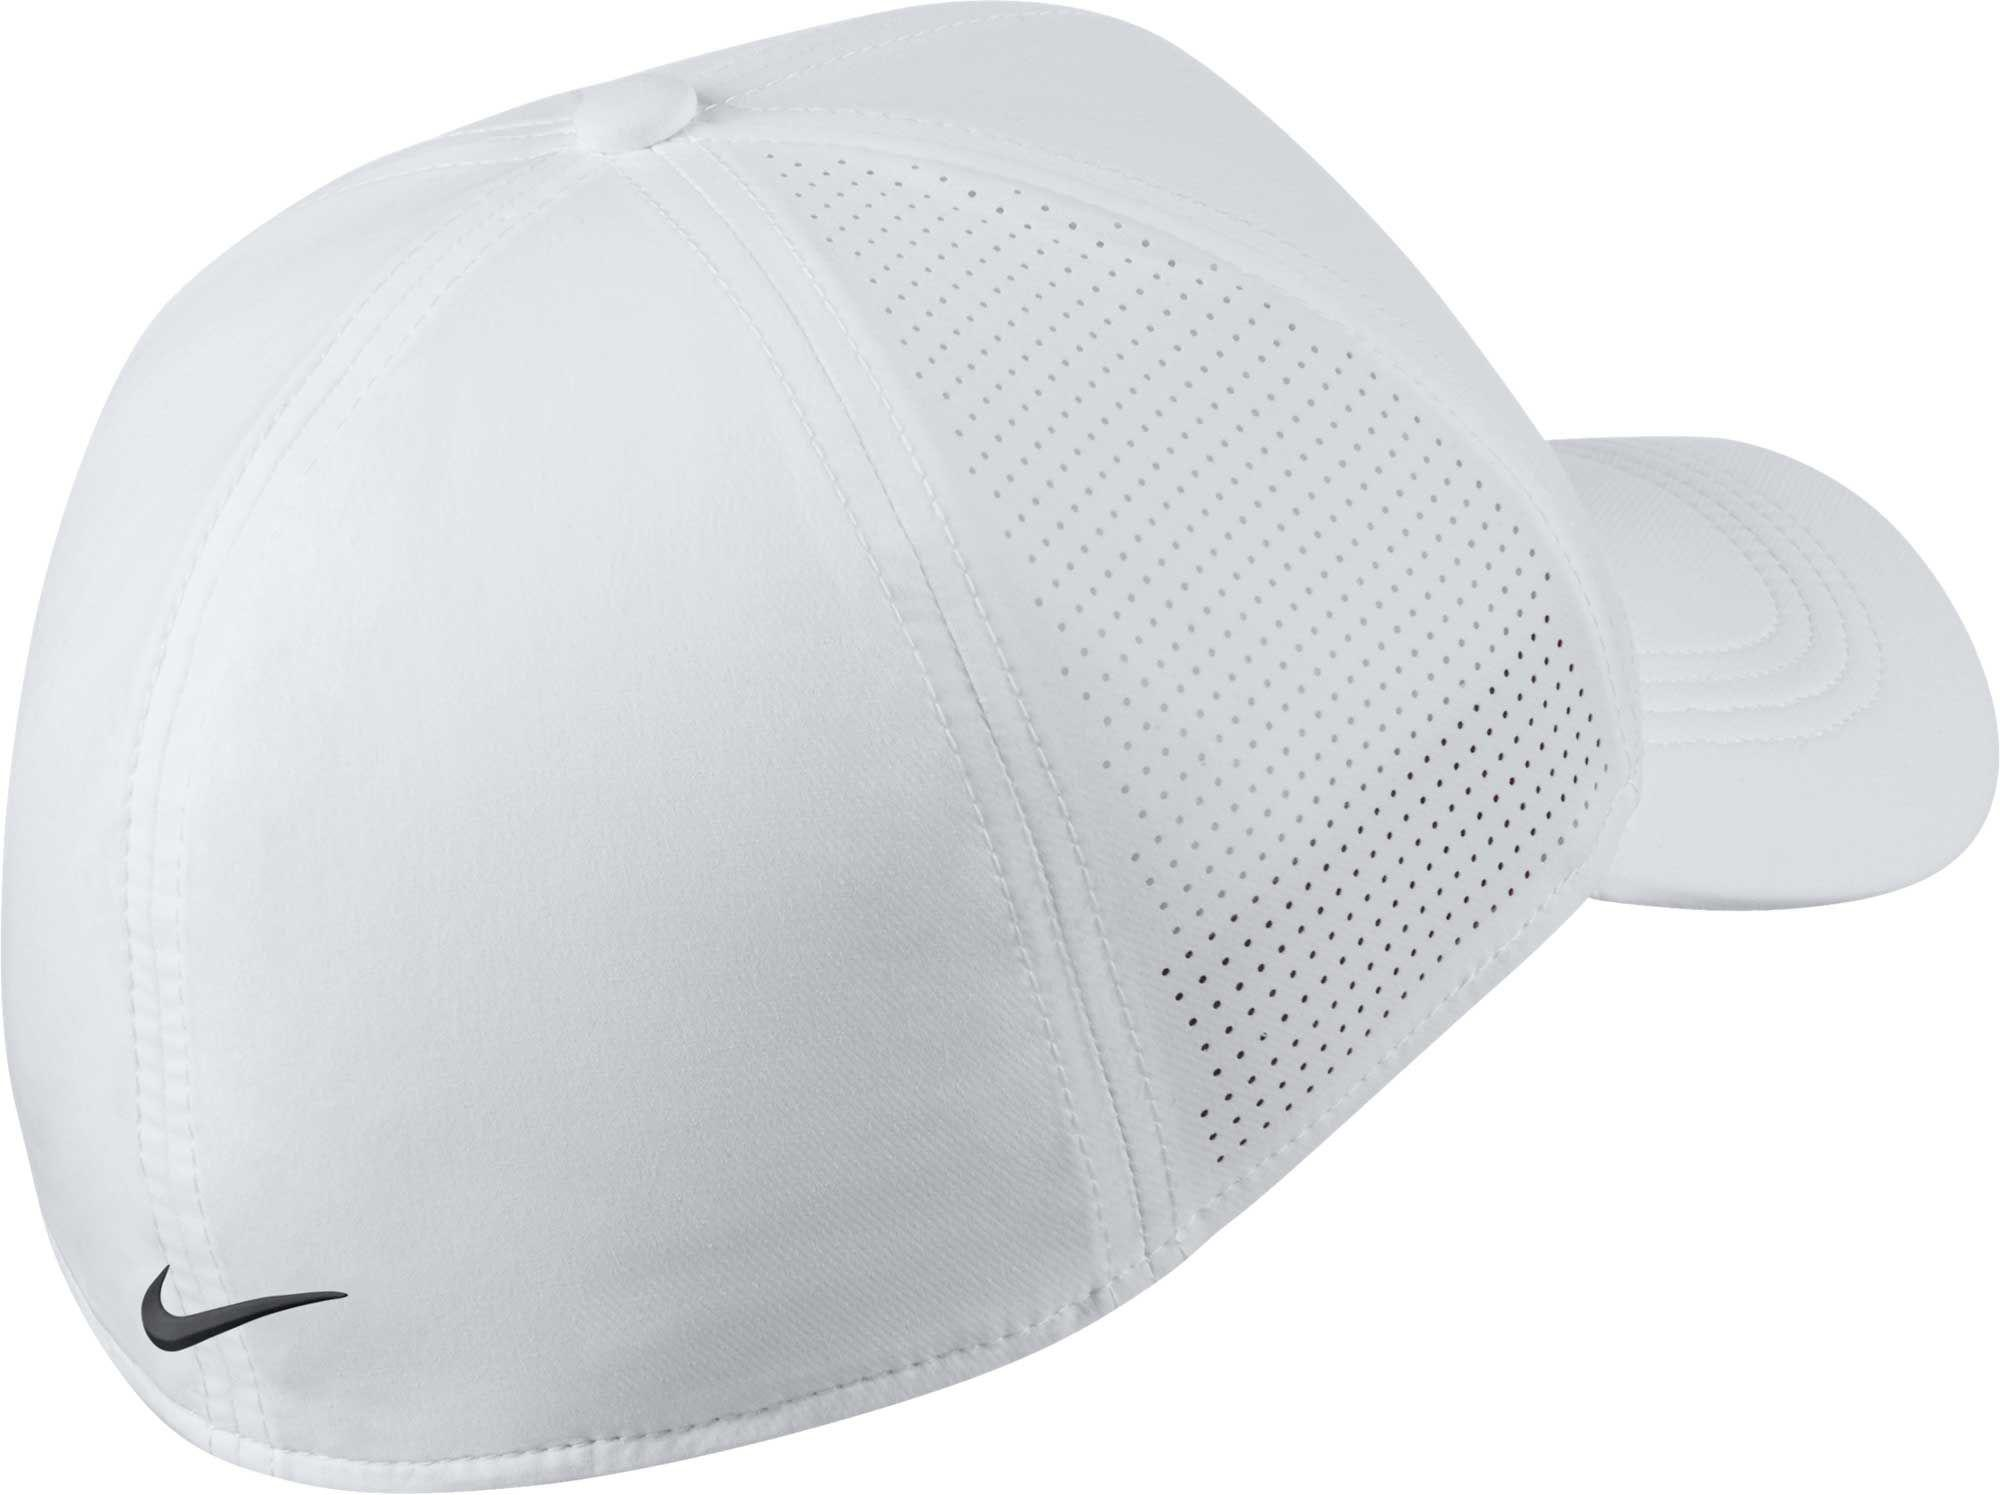 Lyst - Nike 2018 Aerobill Legacy91 Perforated Golf Hat in White for Men f74ff5391a9